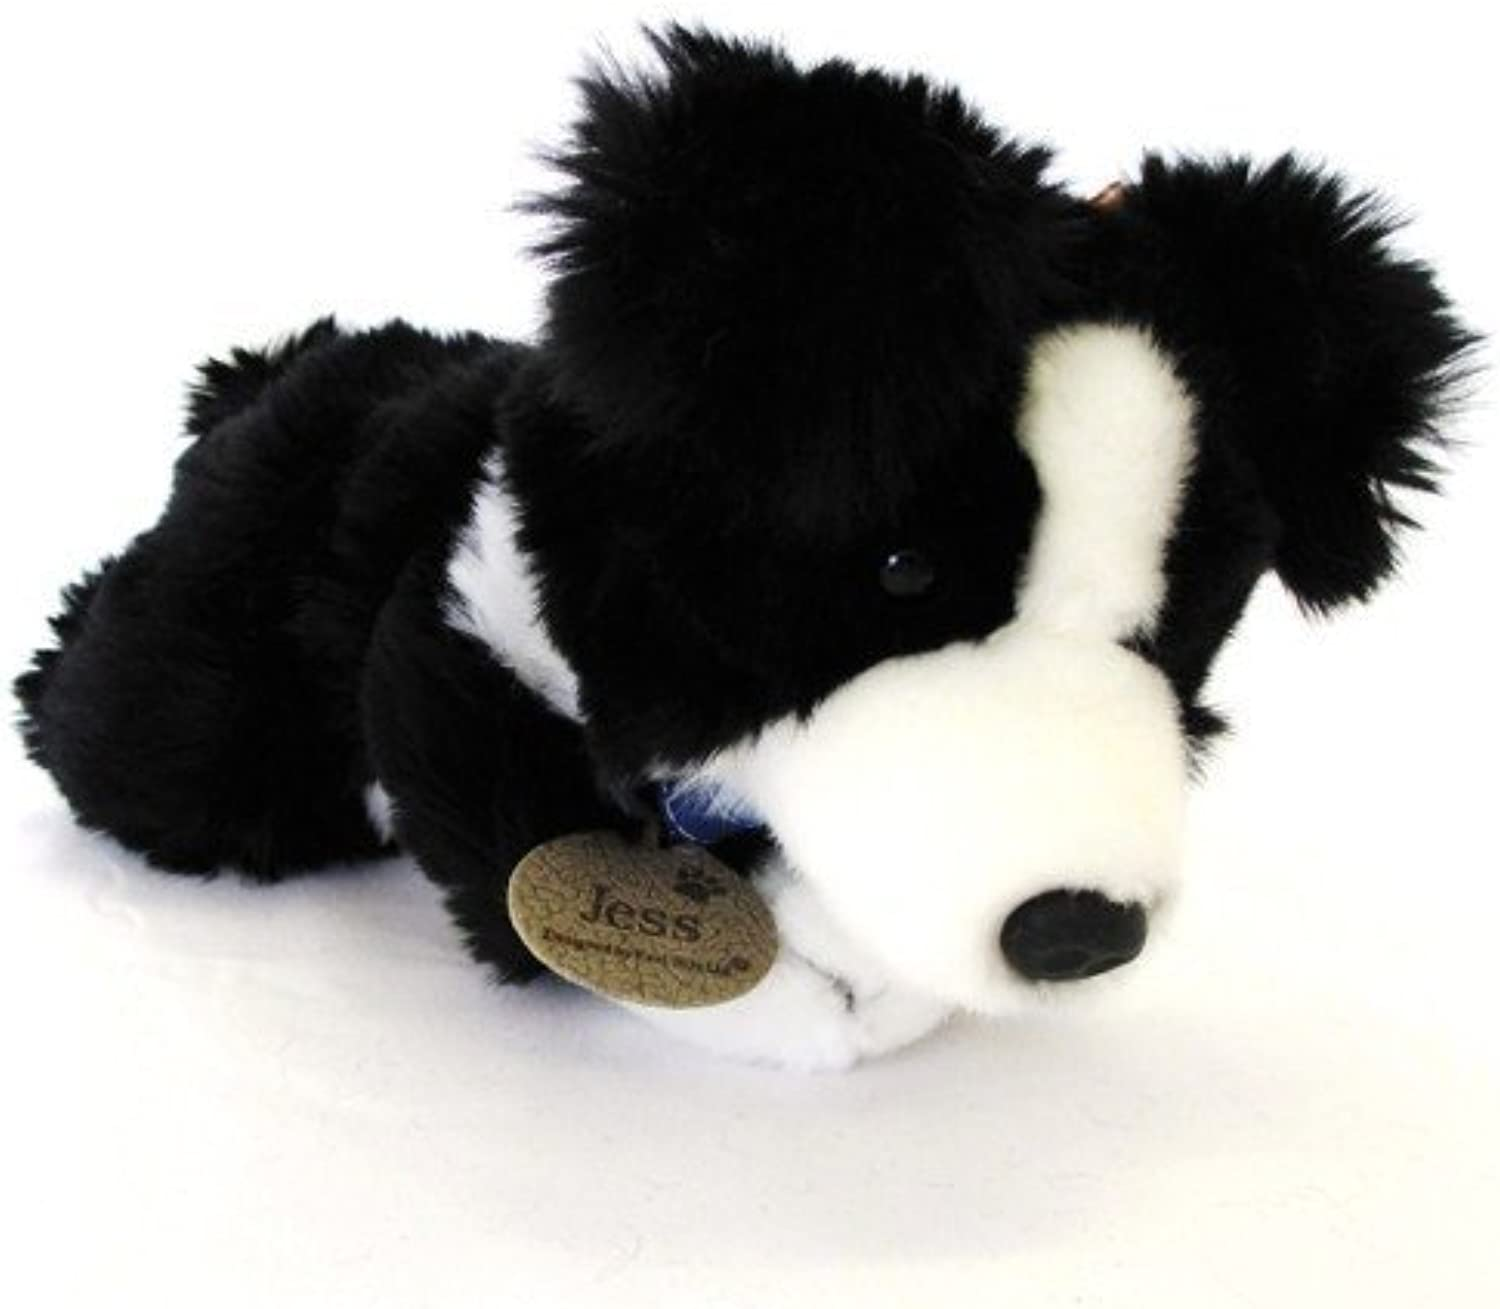 Jess Border Collie Dog 25cm Soft Toy by Keel Toys